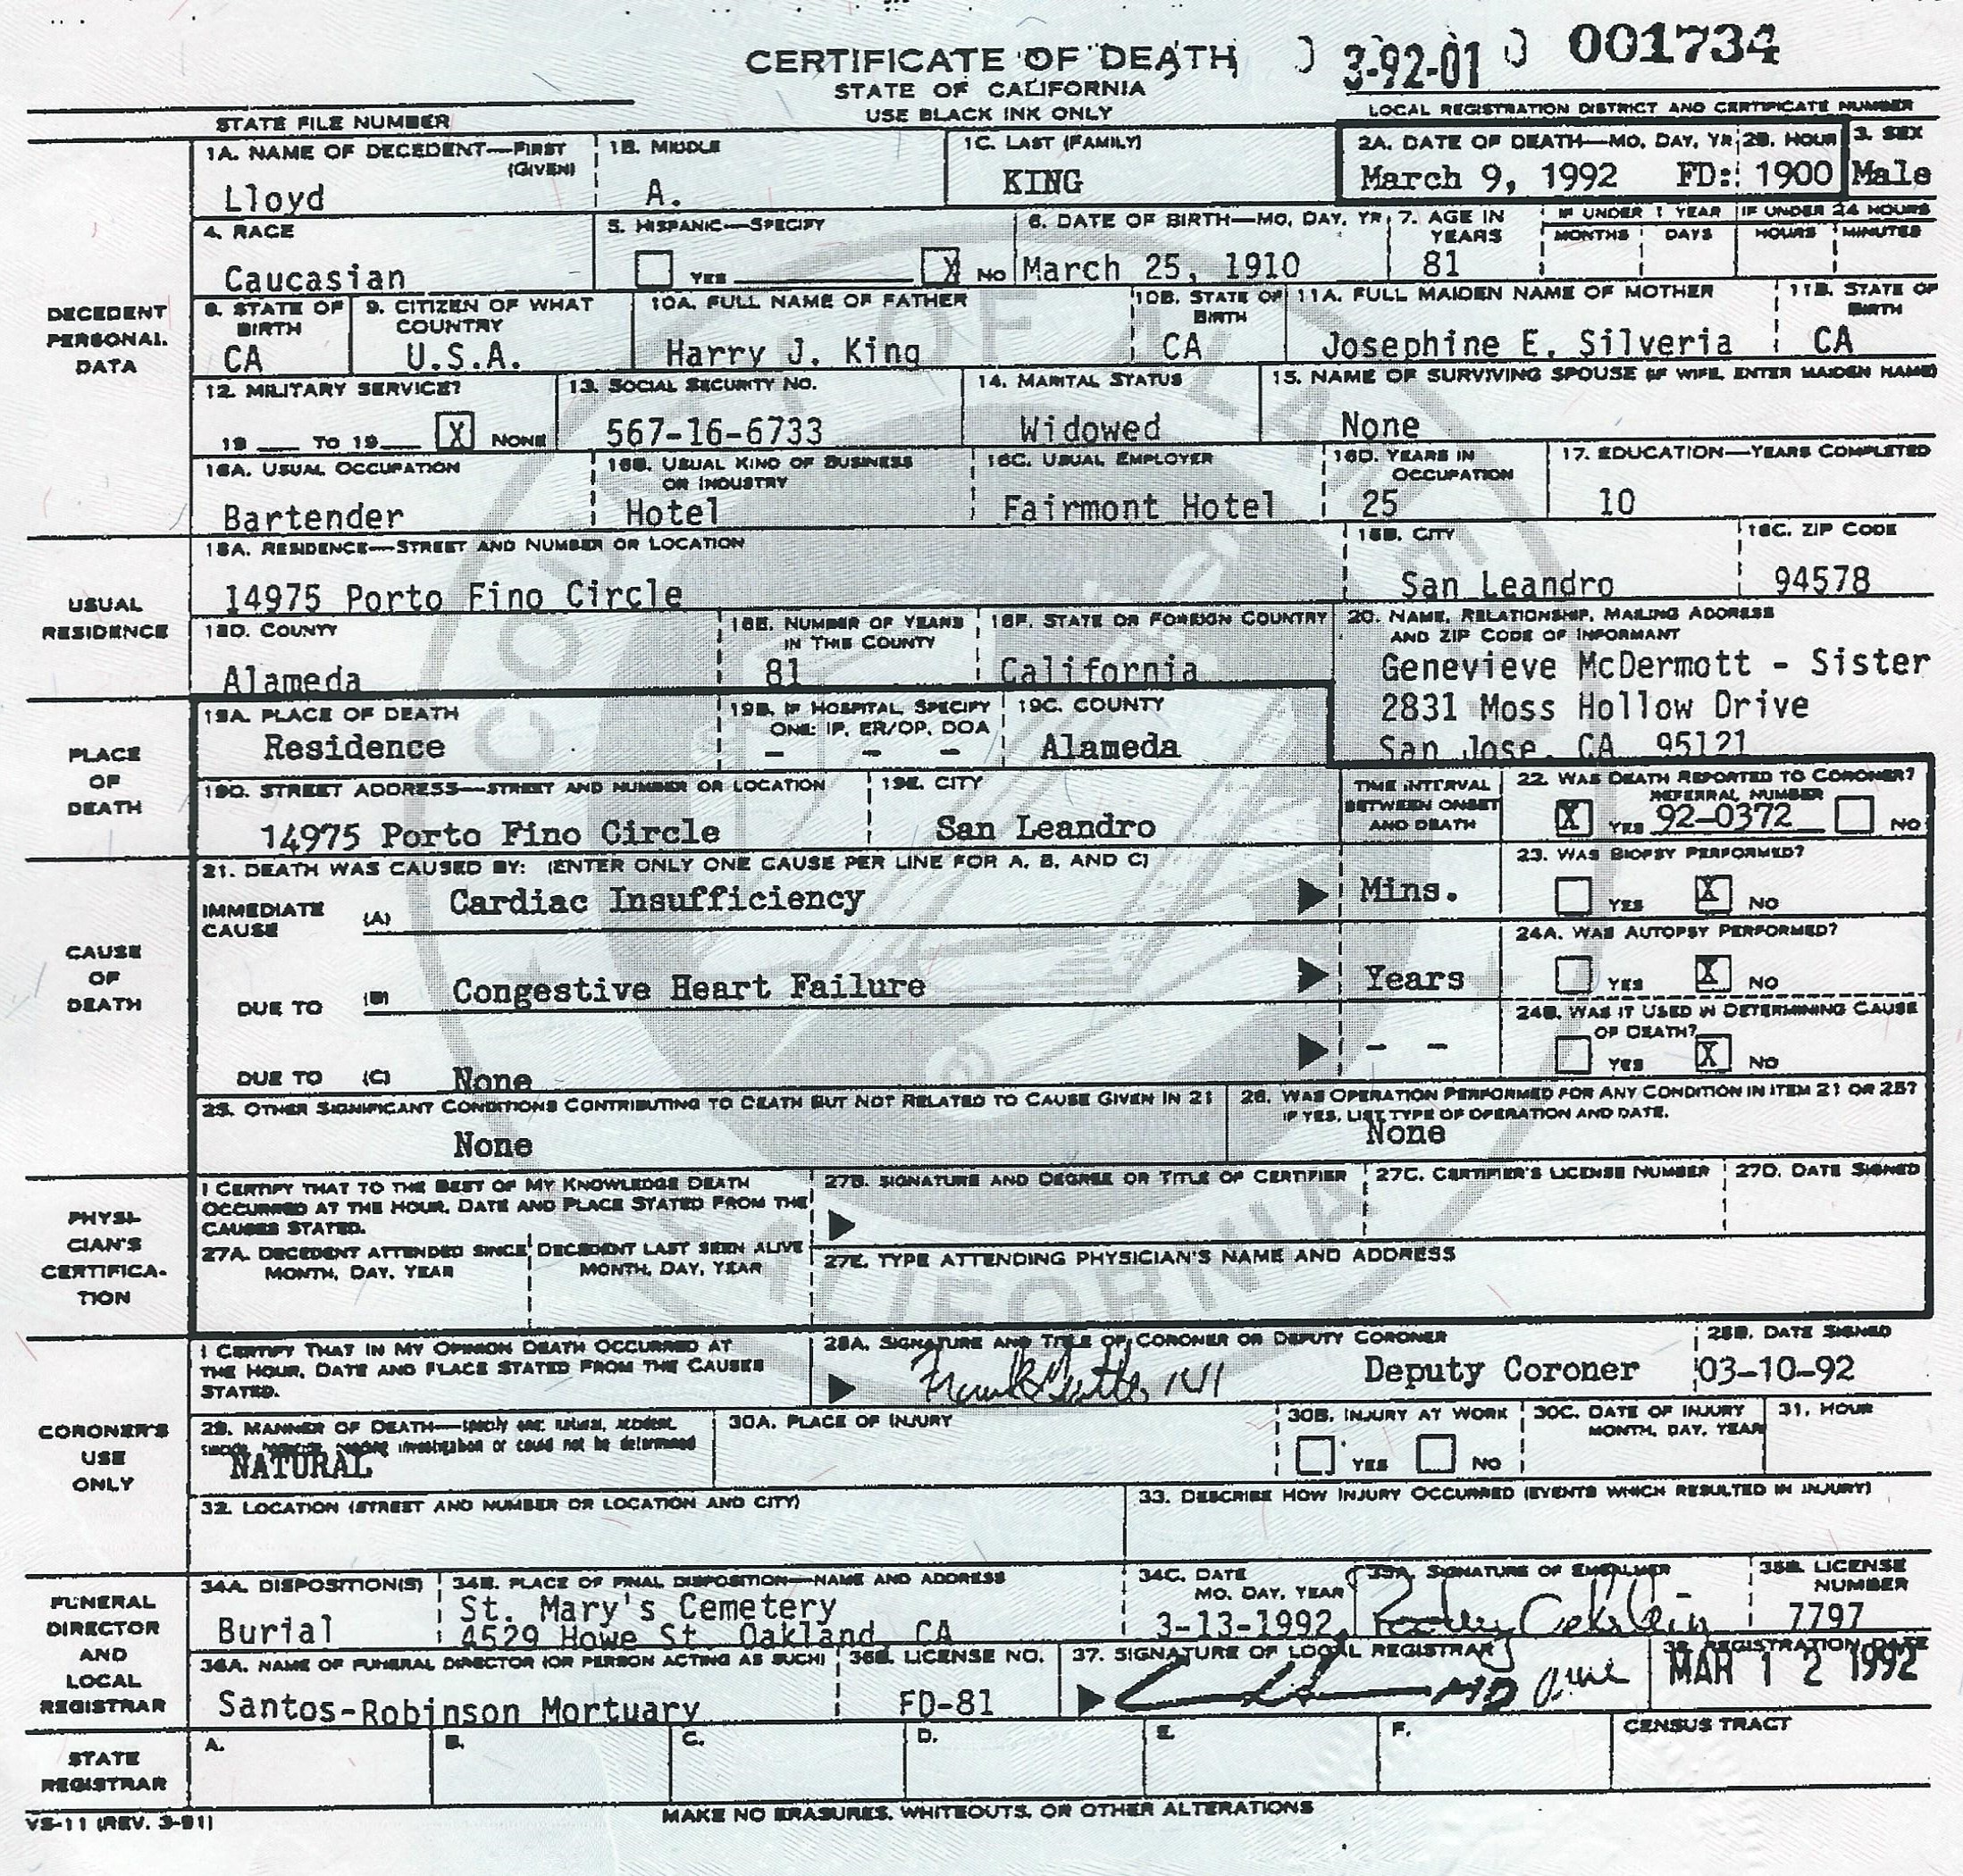 Birth Marriage And Death Certificates Related To The William Henry